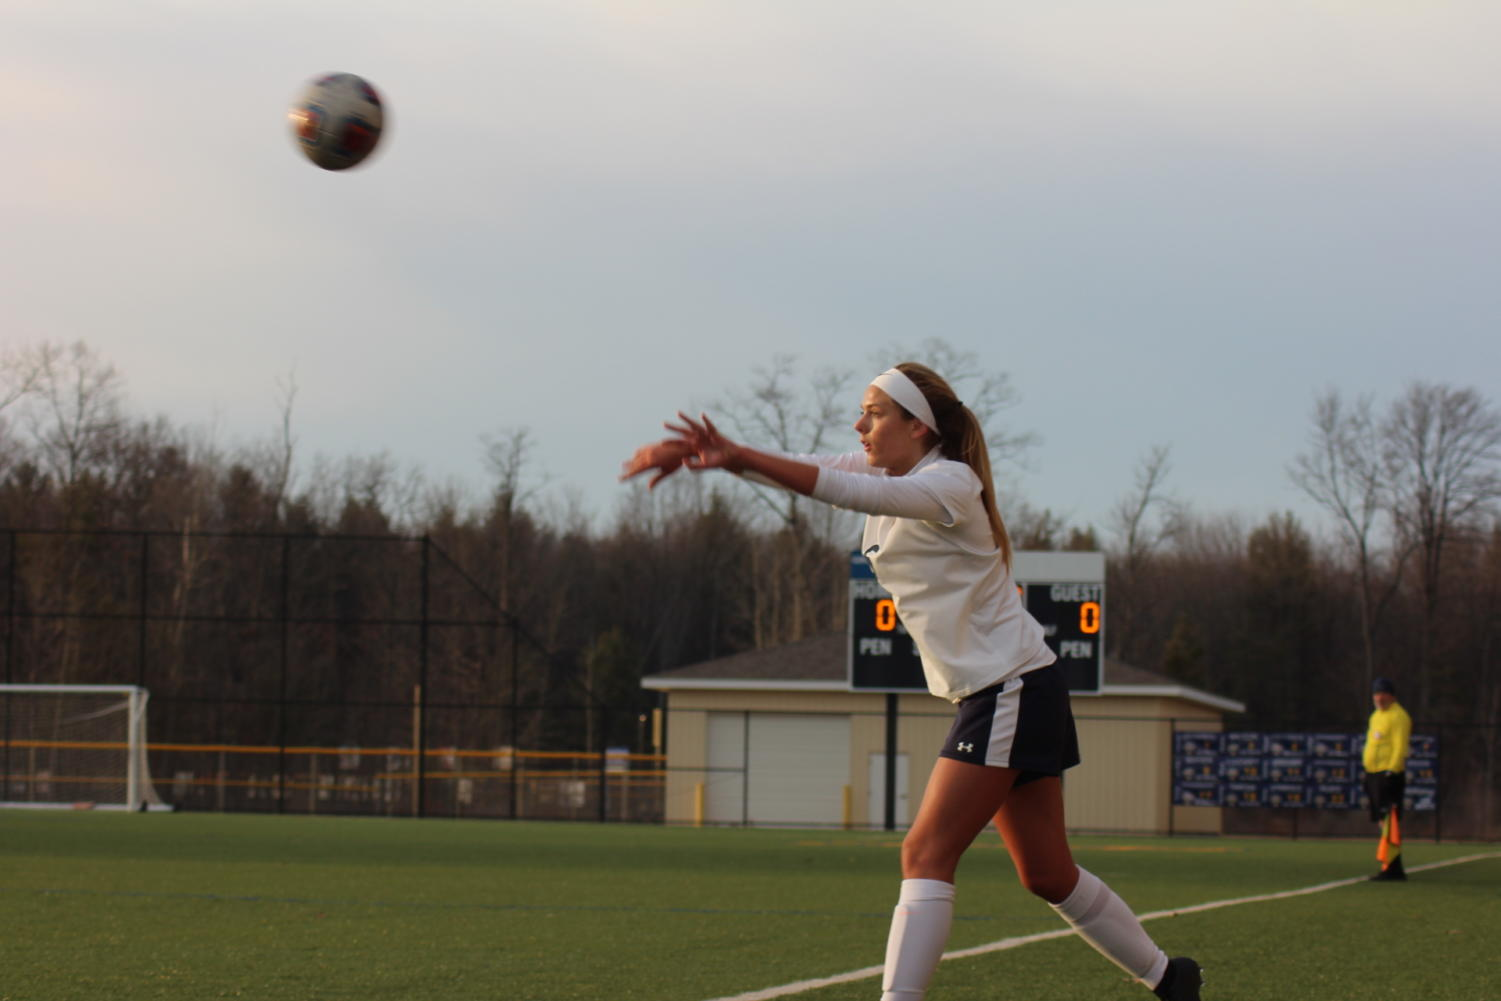 A Buccaneer completes a throw-in during the team's home match vs. Jenison